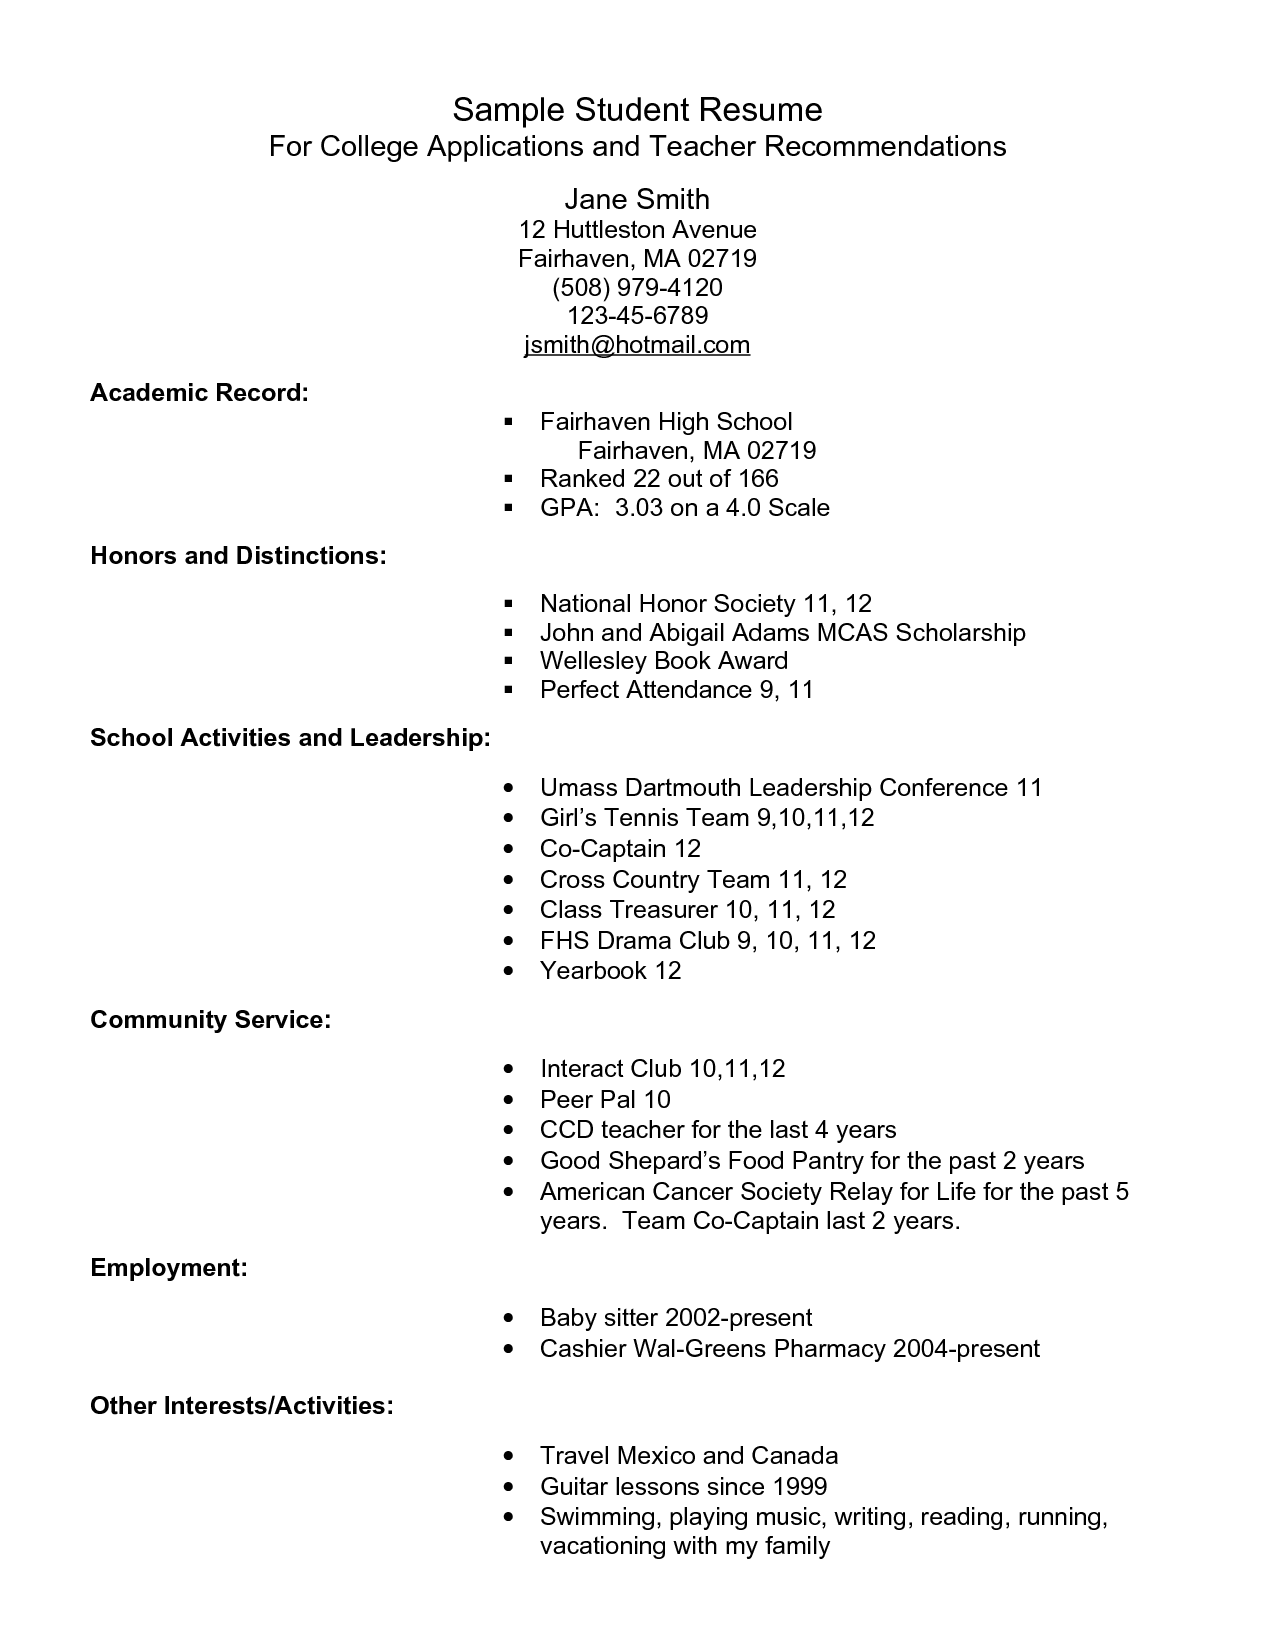 Resume For College Graduate Example Resume For High School Students For College Applications